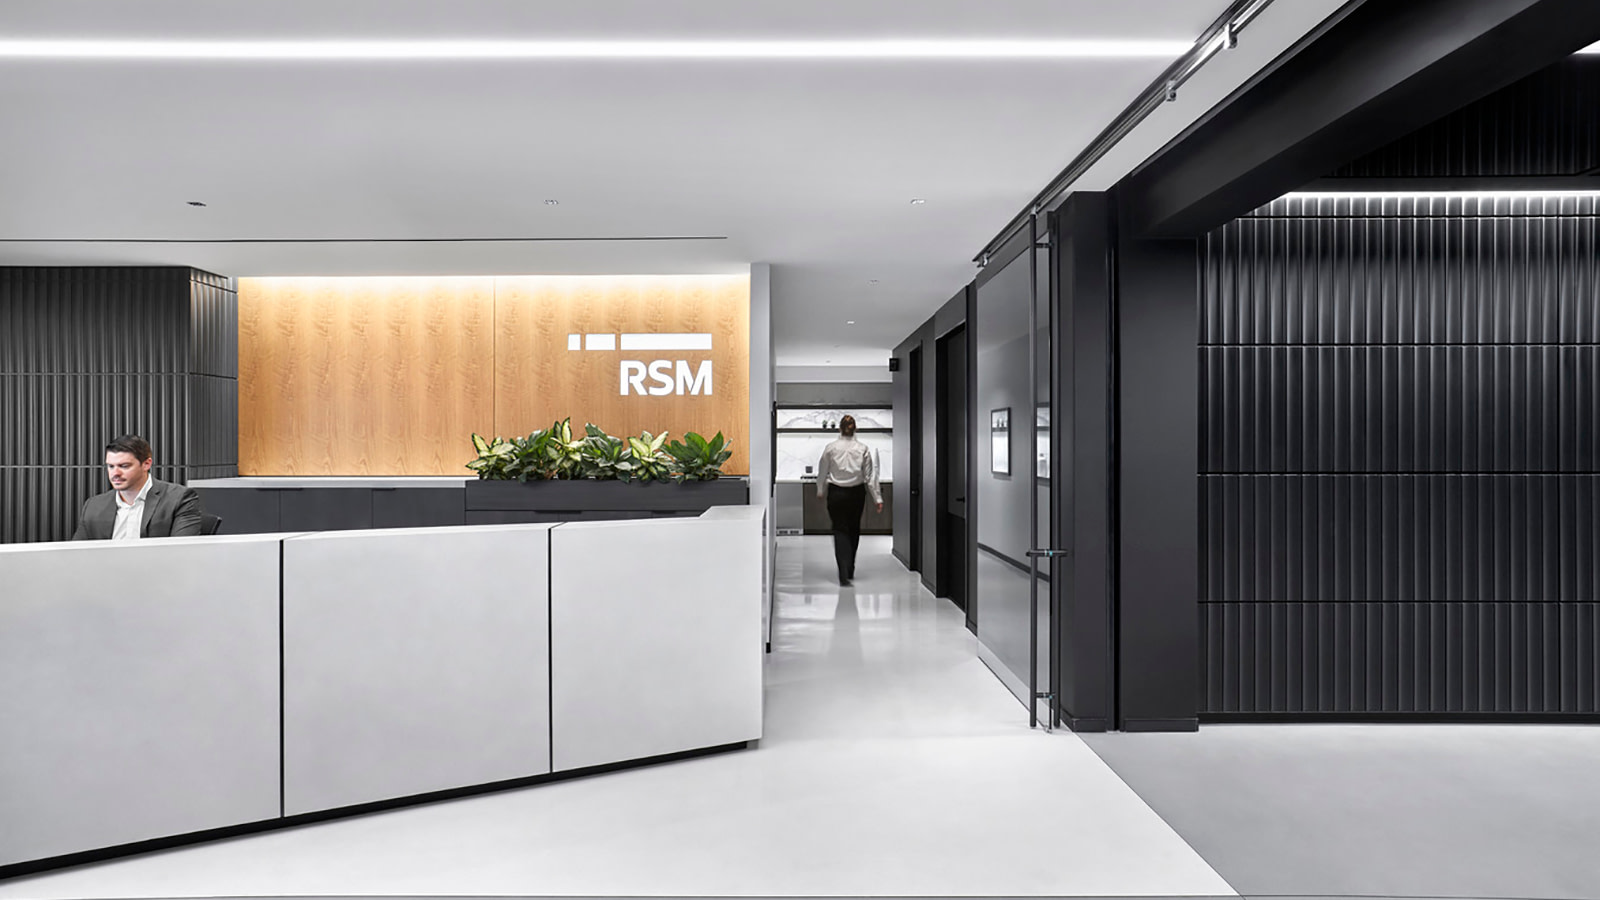 RSM Reception area and lobby